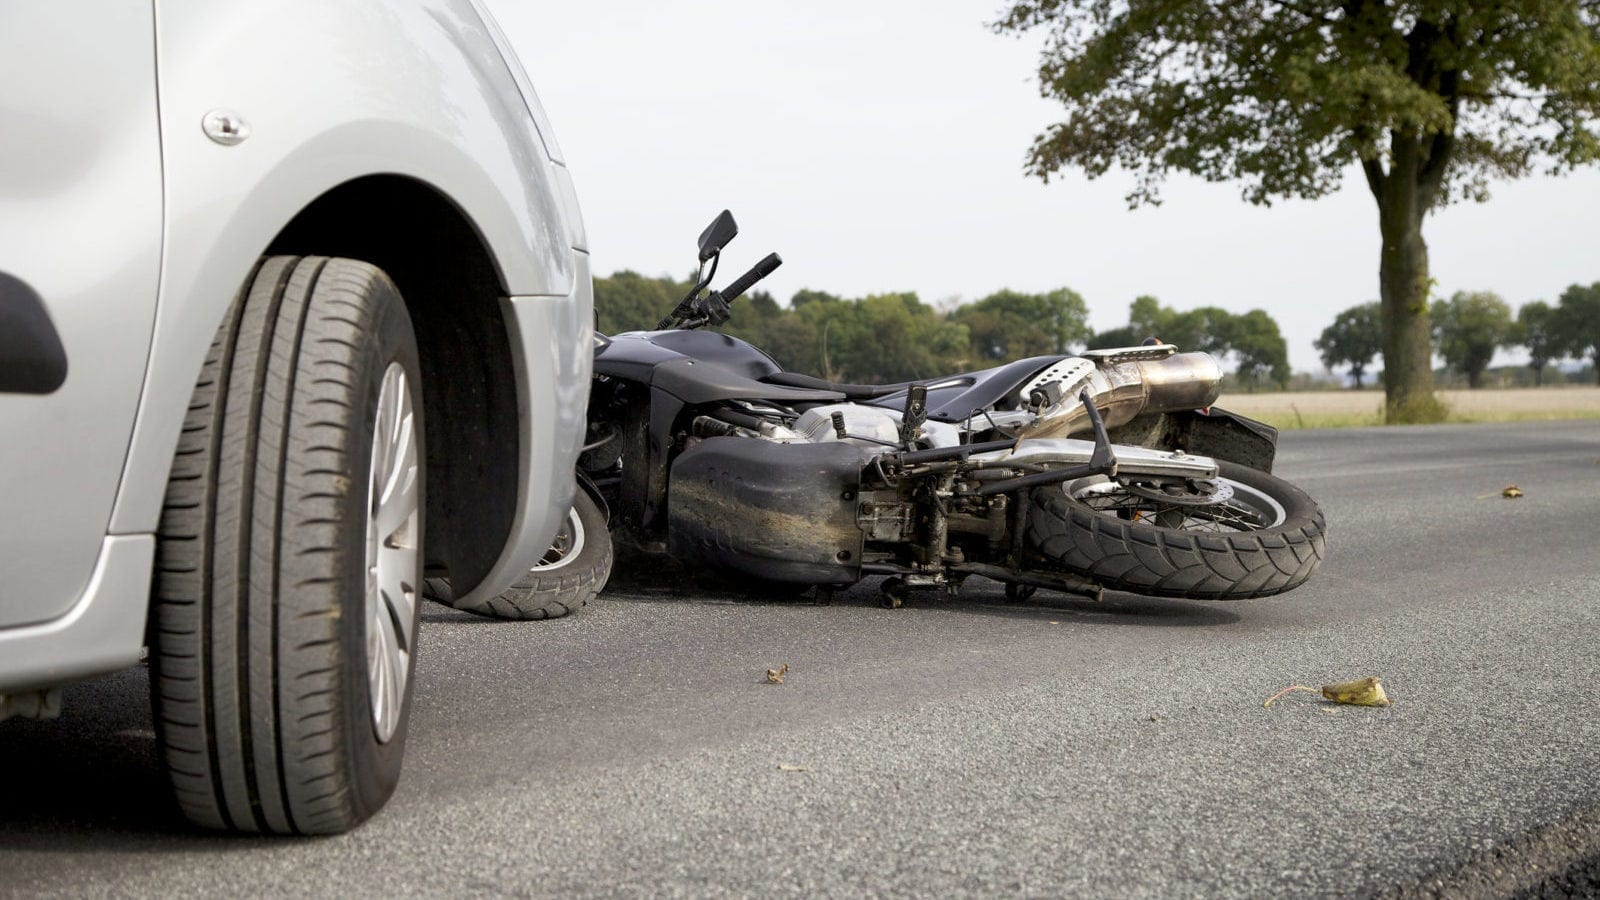 Motorcycle Accident With A Larger Vehicle Stock Photo